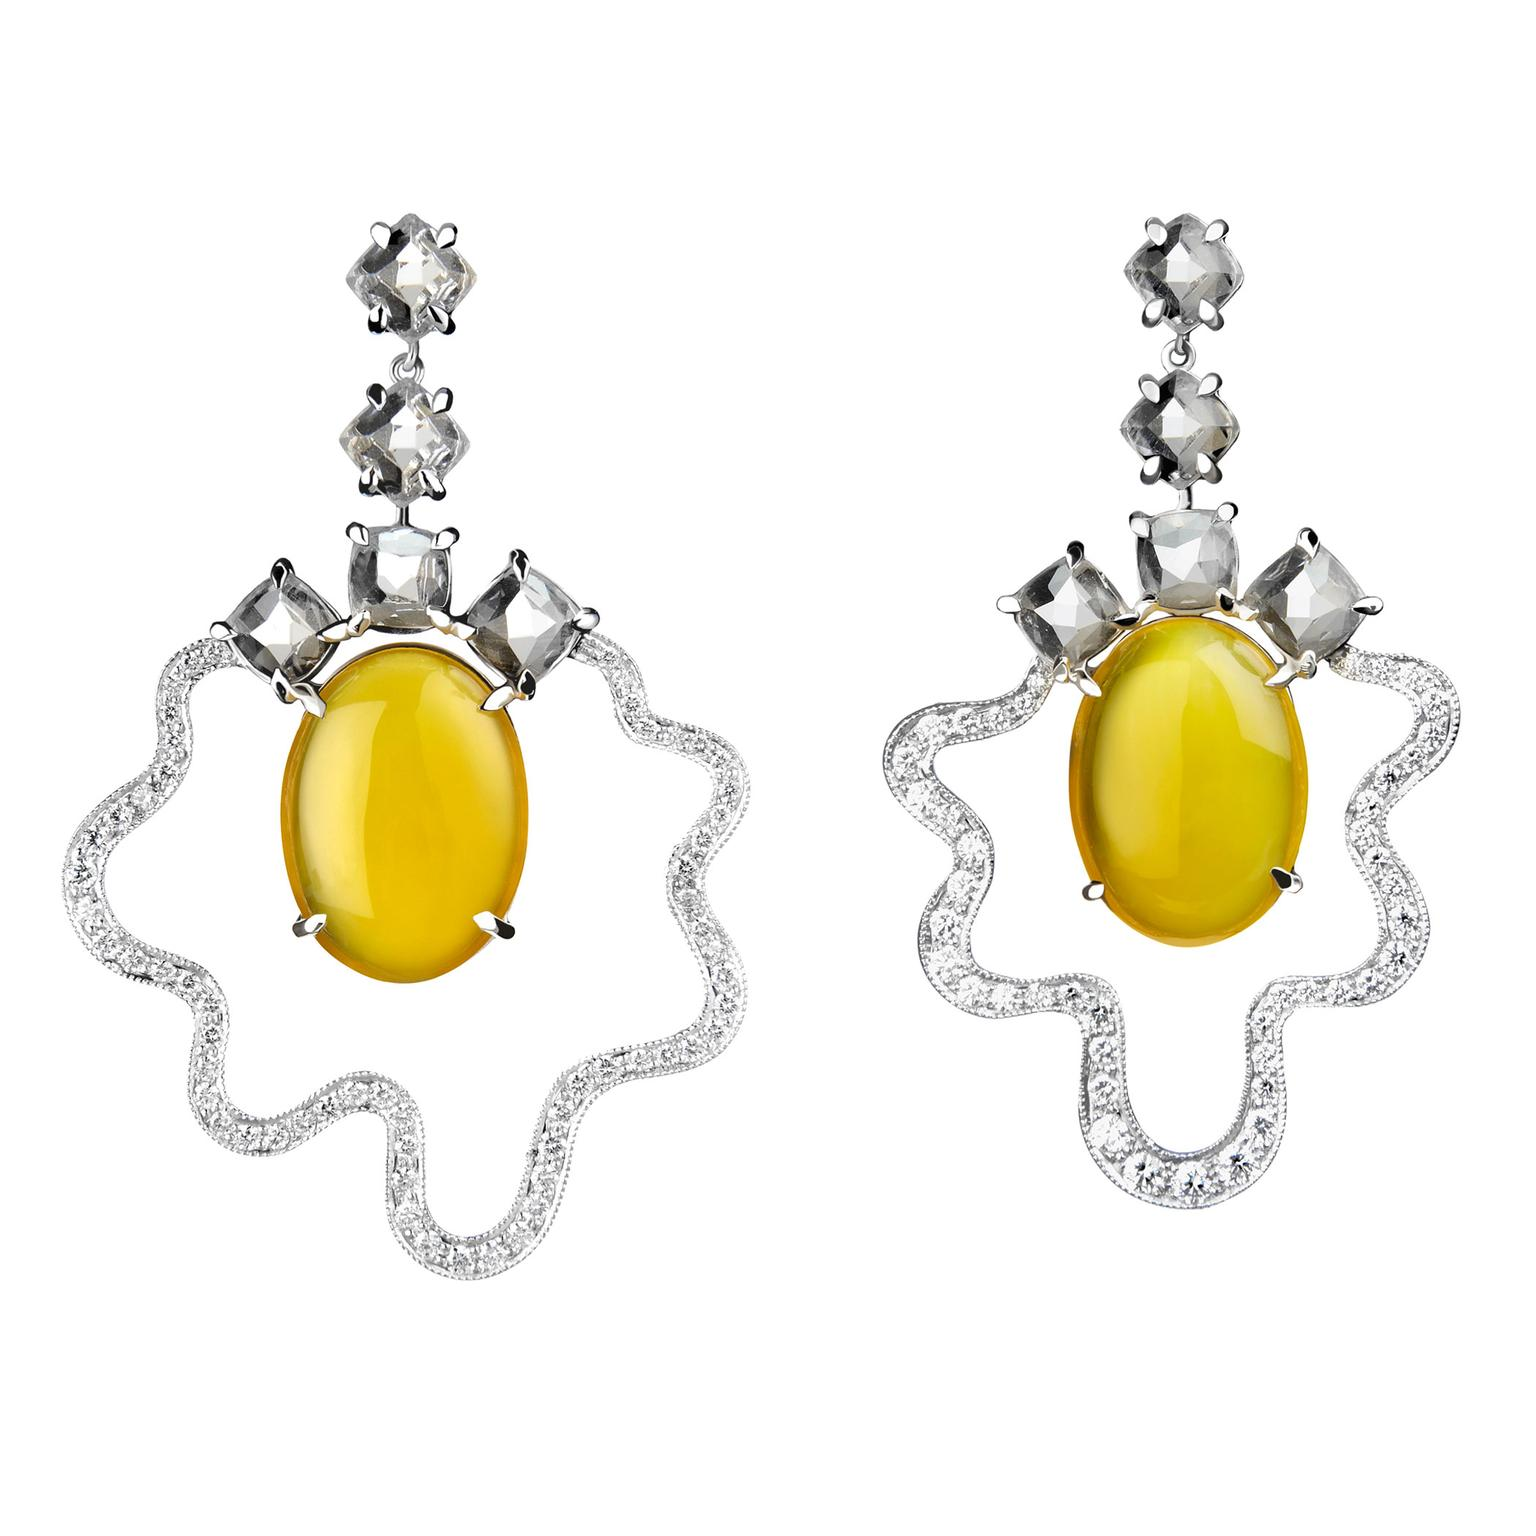 Tessa Packard Fried Egg Earrings